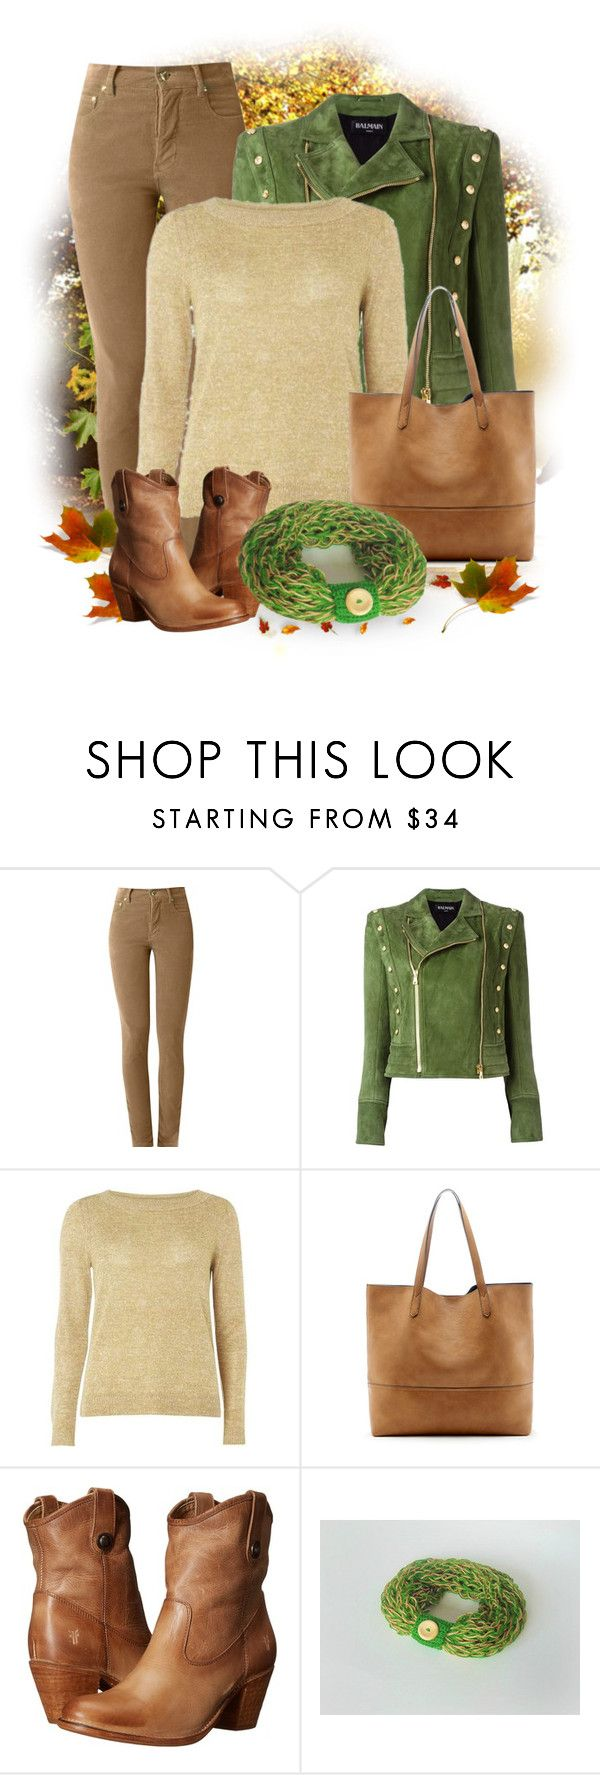 """Beige & Brown & Green"" by styledonna on Polyvore featuring moda, Amapô, Balmain, VILA, Sole Society i Frye"